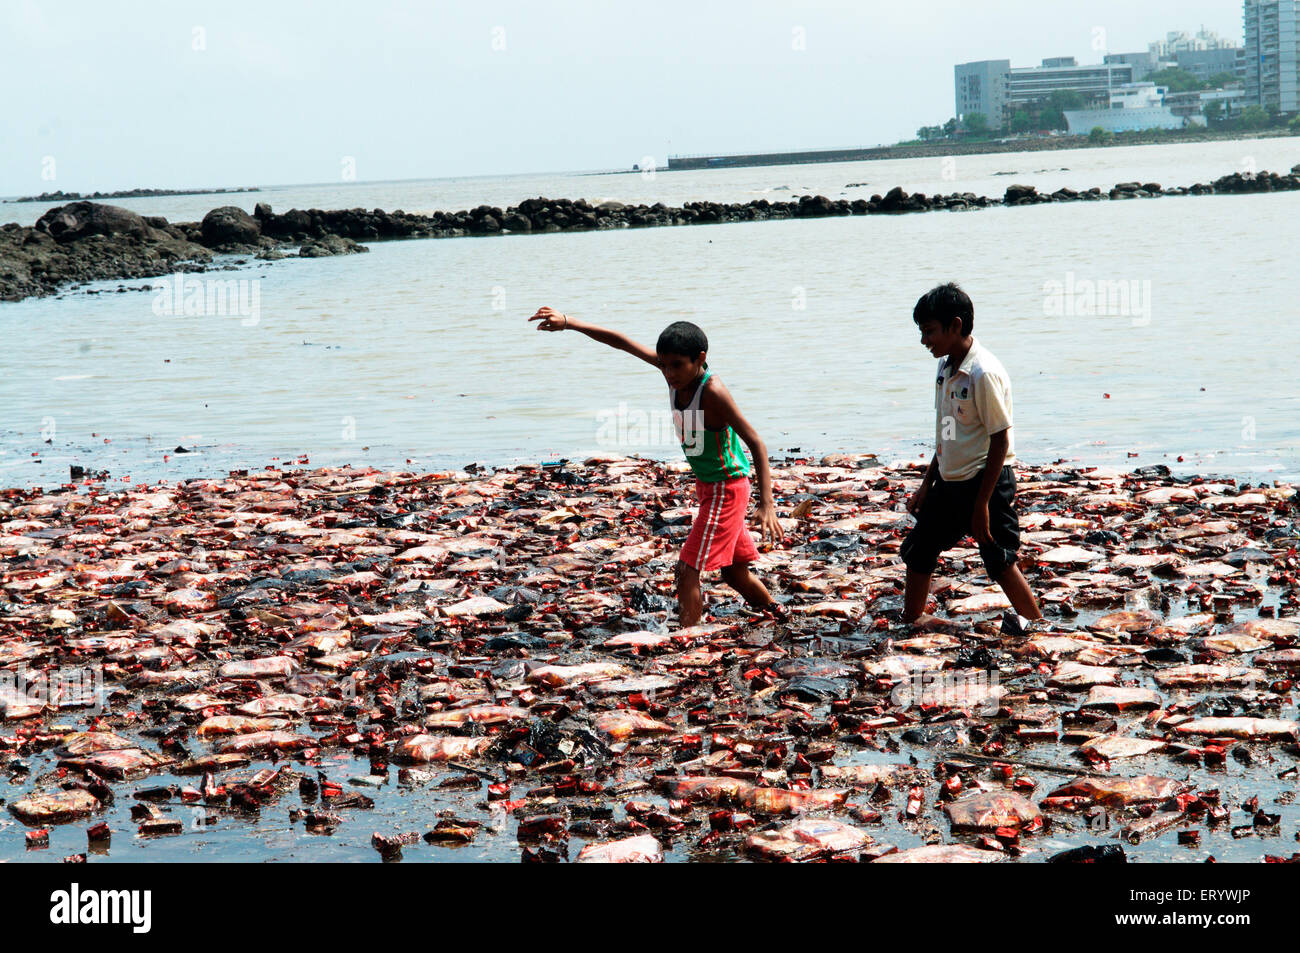 Boys searching biscuit packets from oil soaked  due to container ship chitra colliding in sea Bombay Mumbai - Stock Image